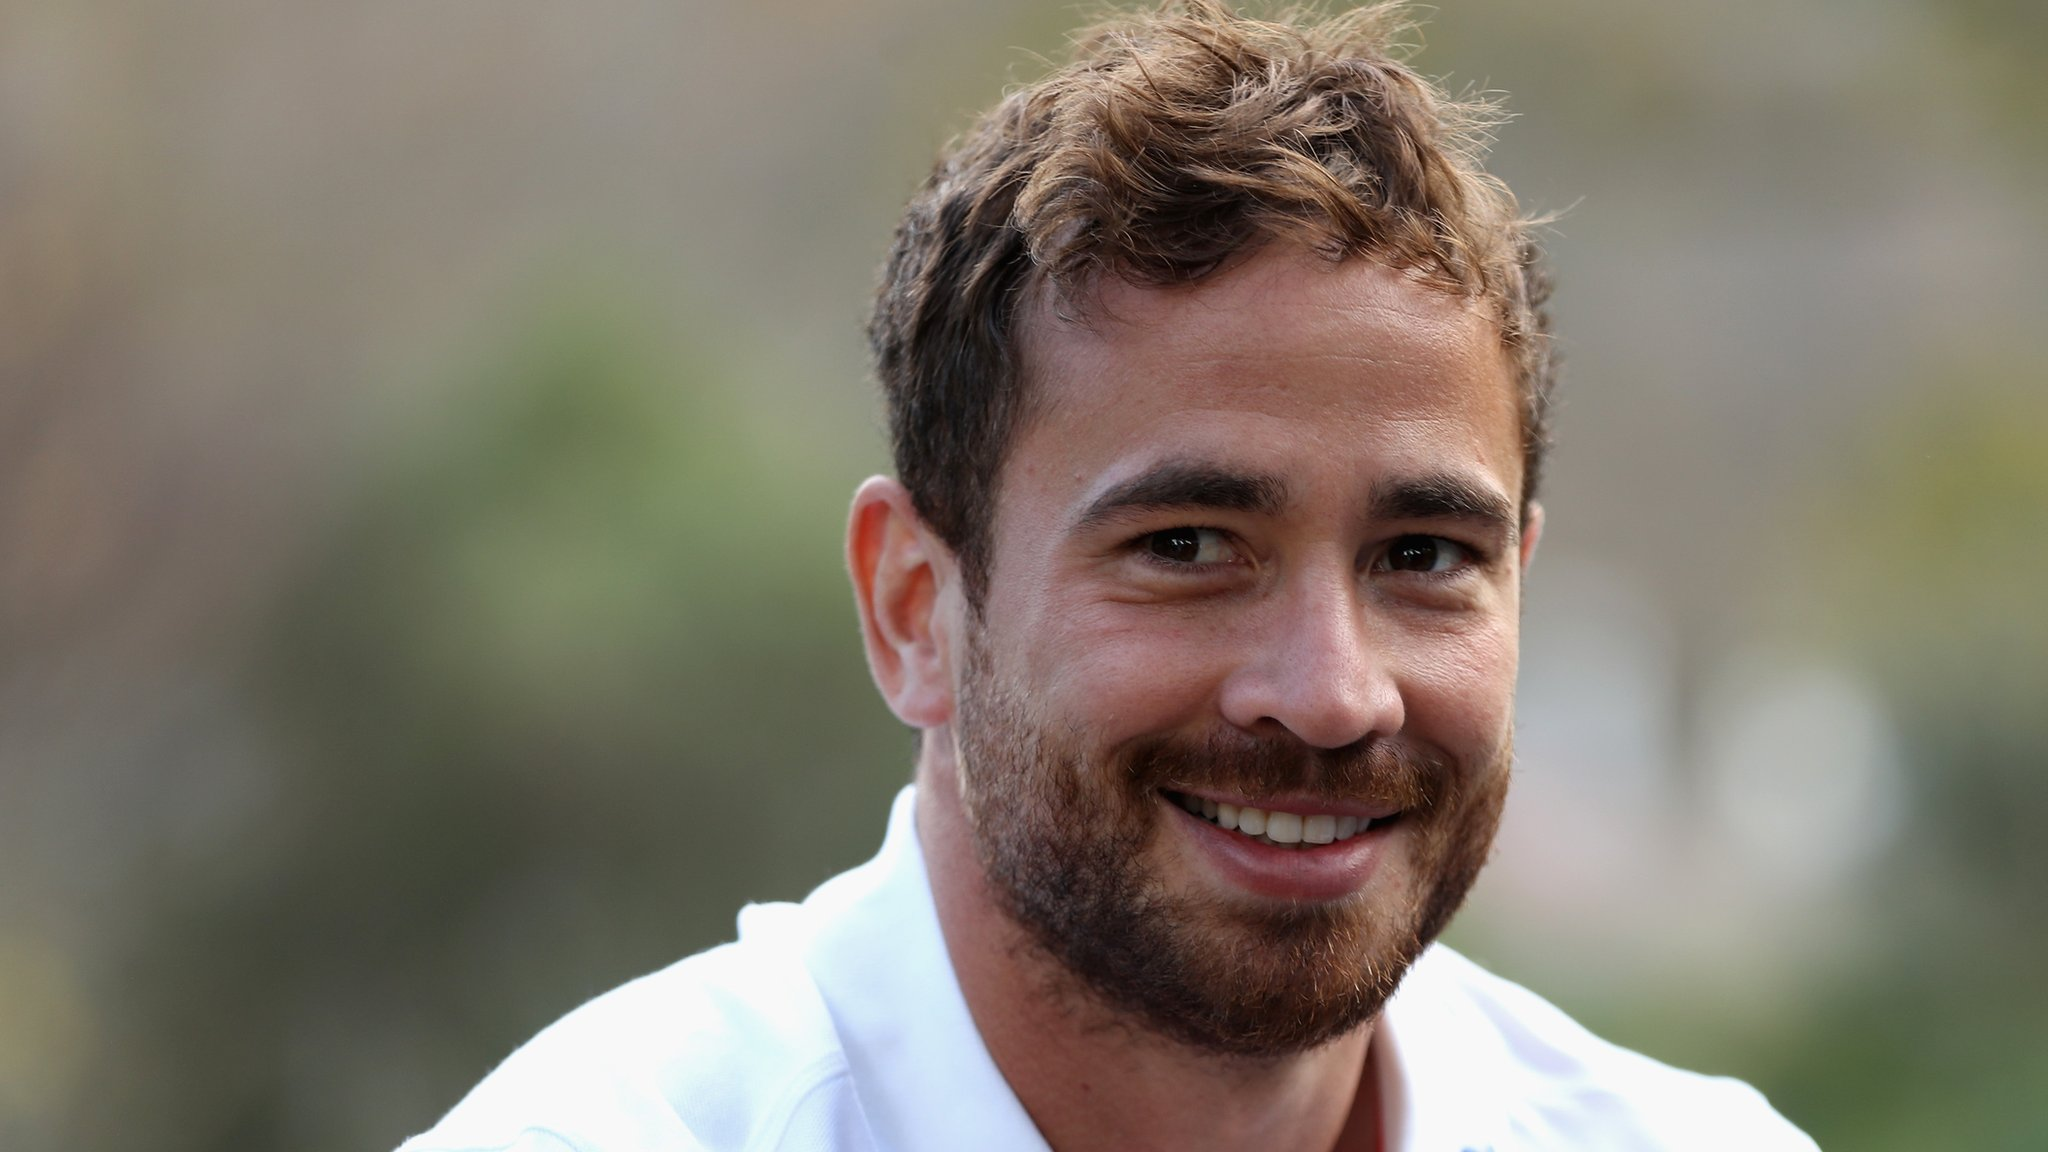 Danny Cipriani: 'For me it's always been about playing for England,' says returning fly-half